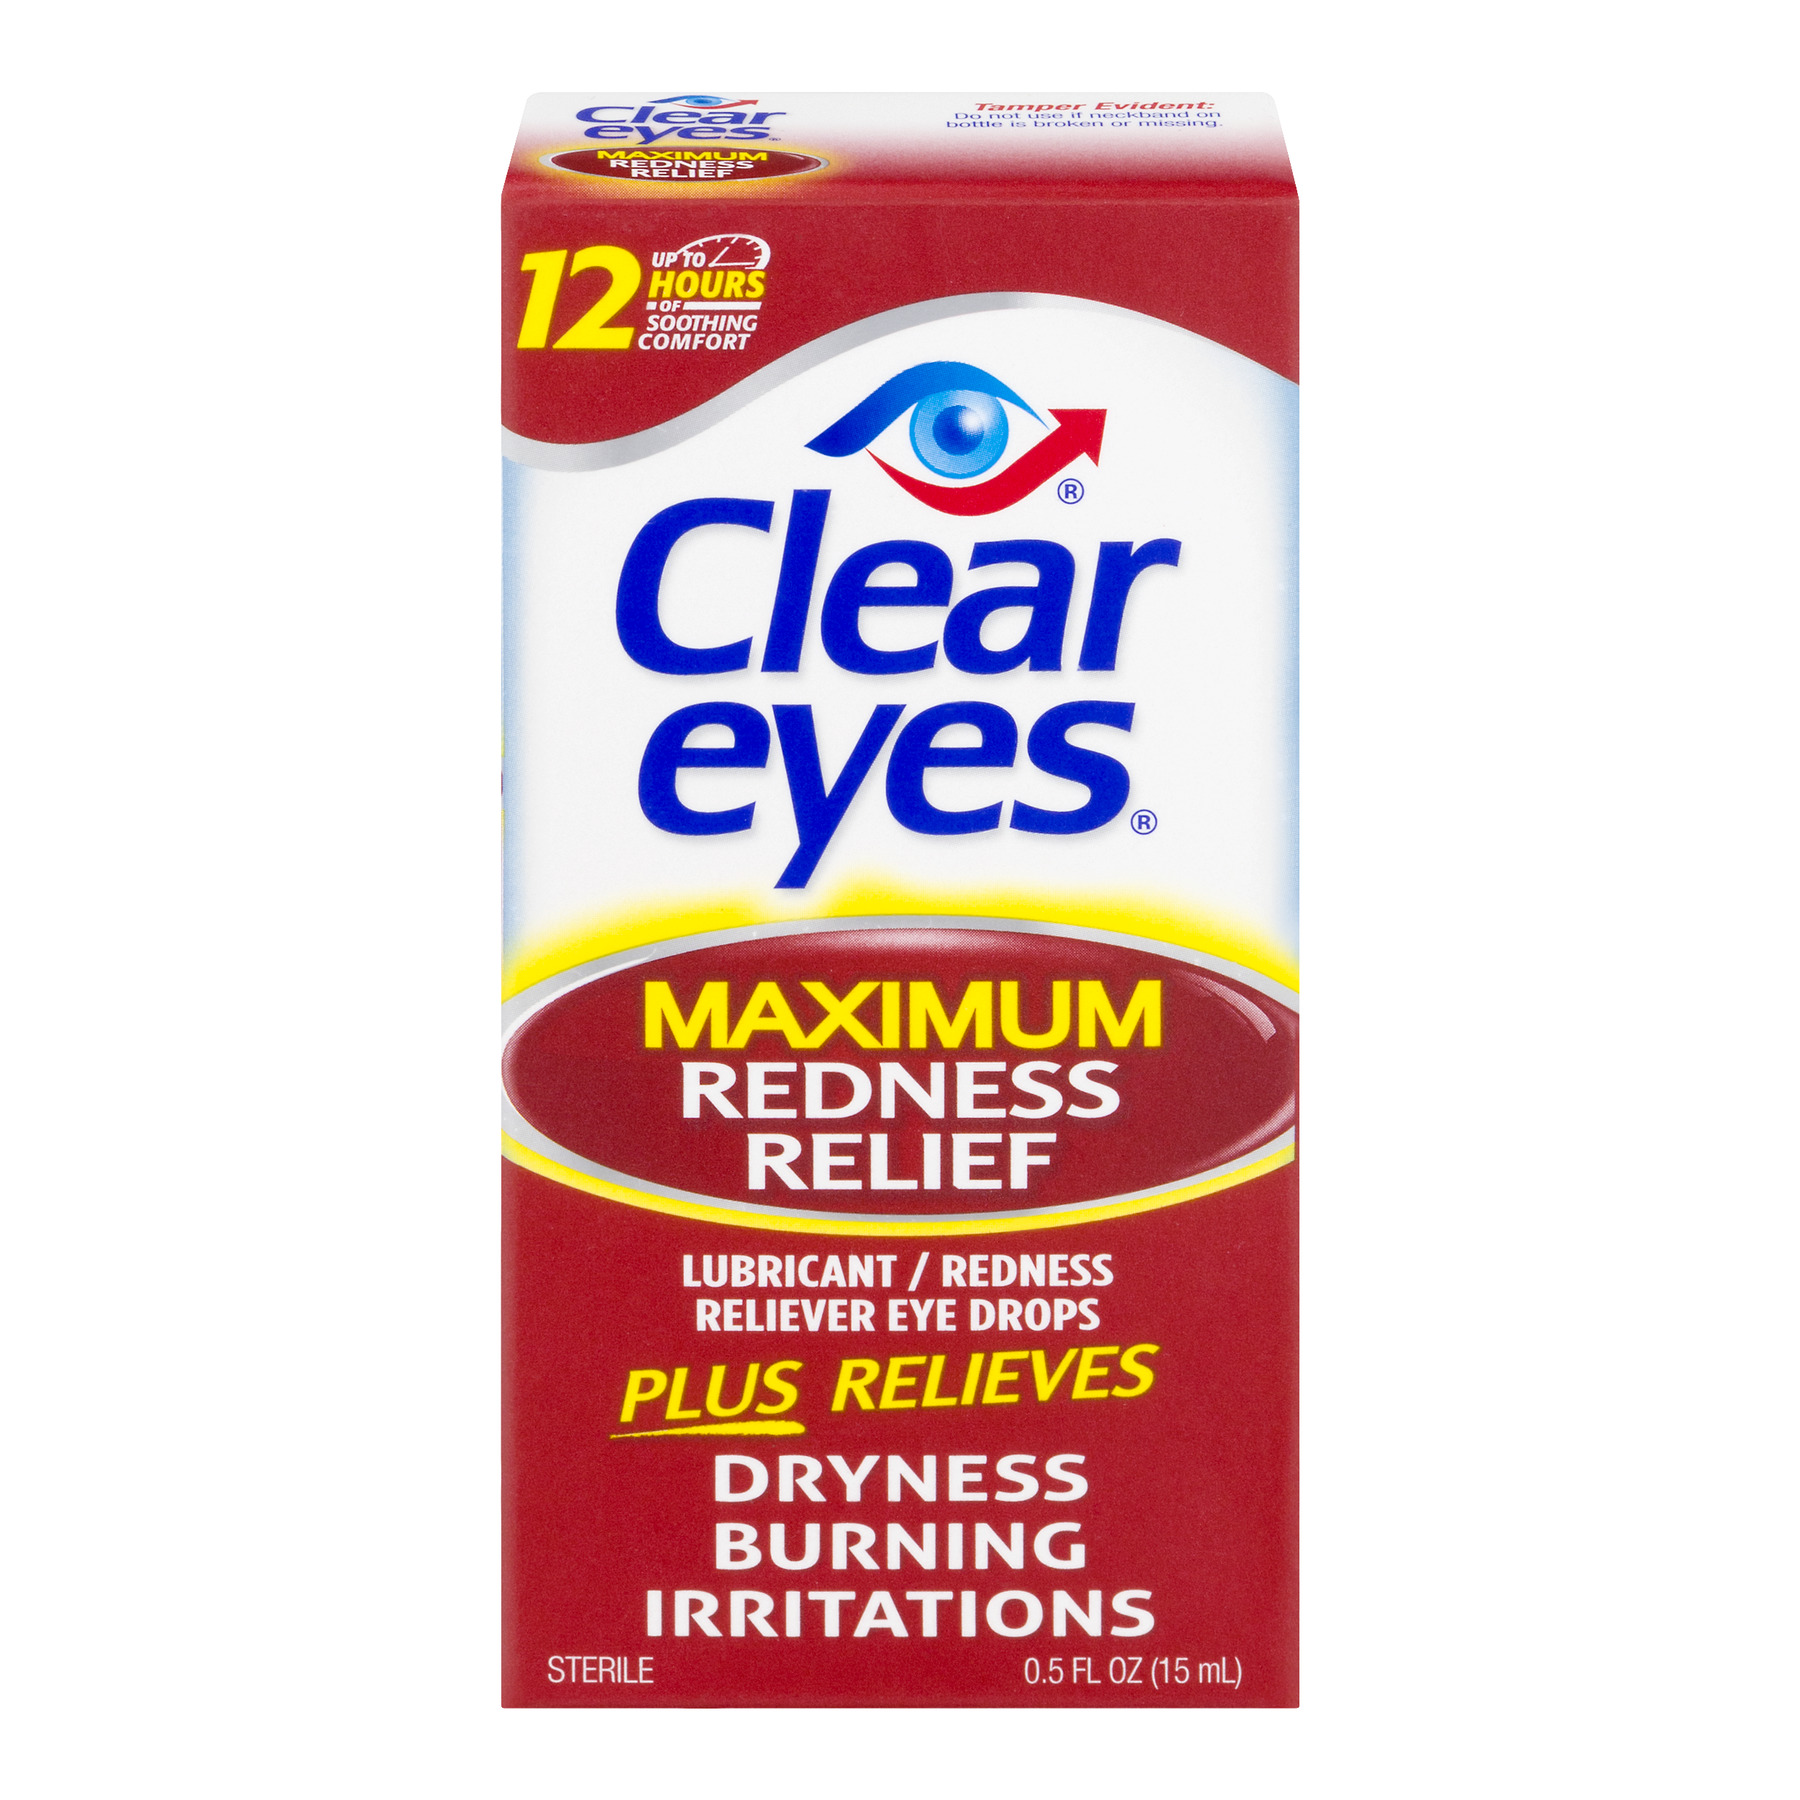 Clear Eyes Lubricant / Redness Reliever Eye Drops, 0.5 fl oz